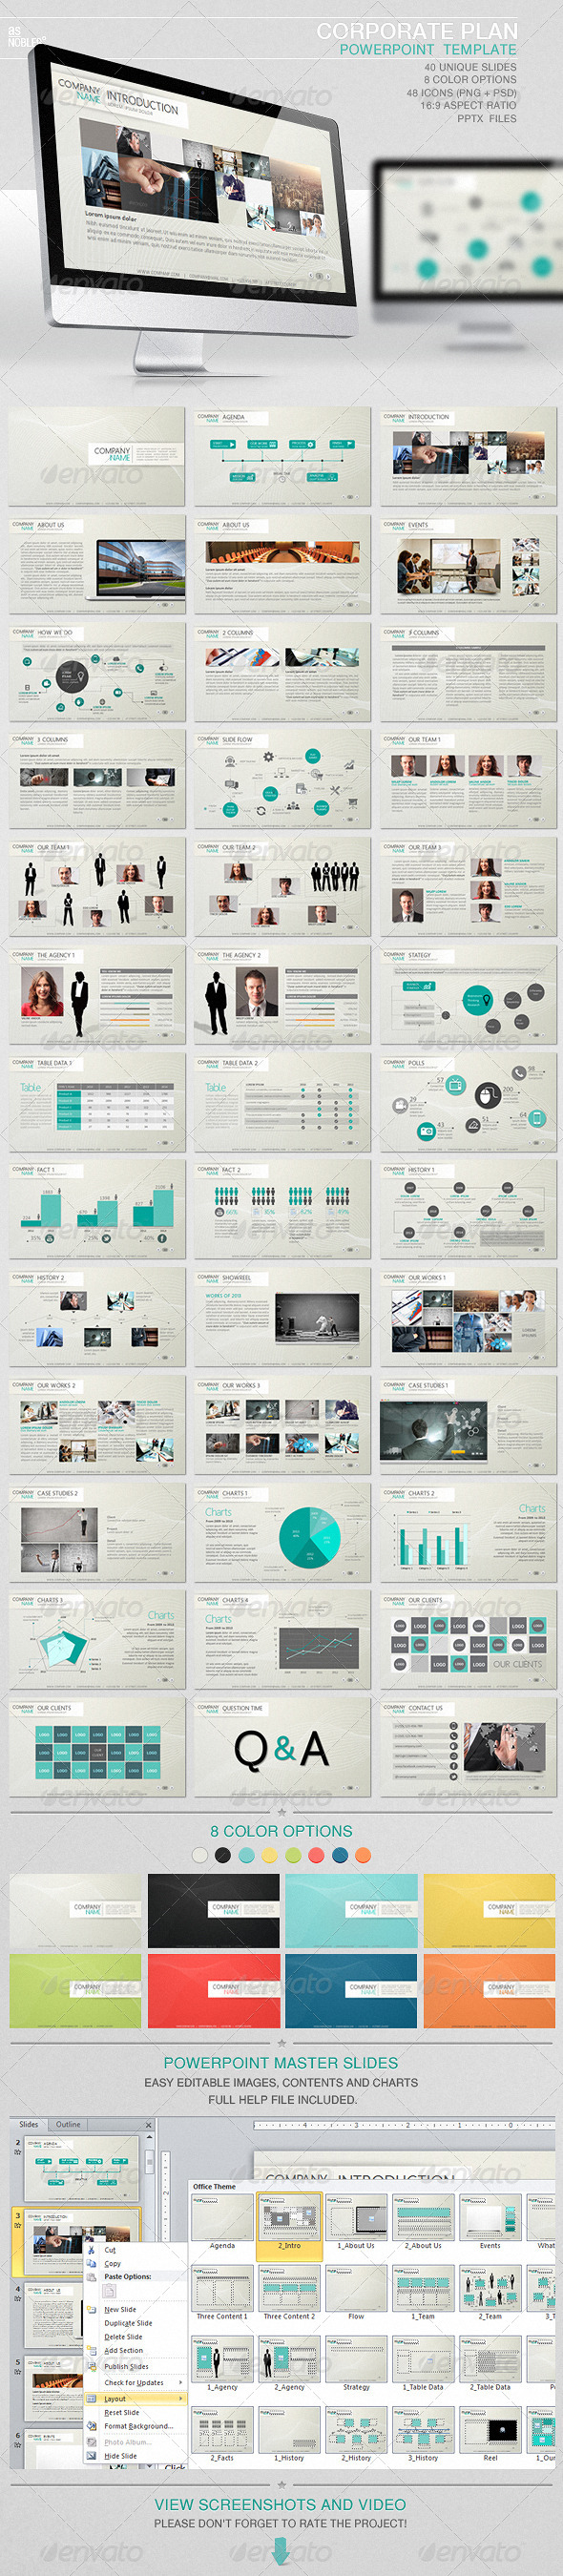 GraphicRiver Corporate Plan 4928678